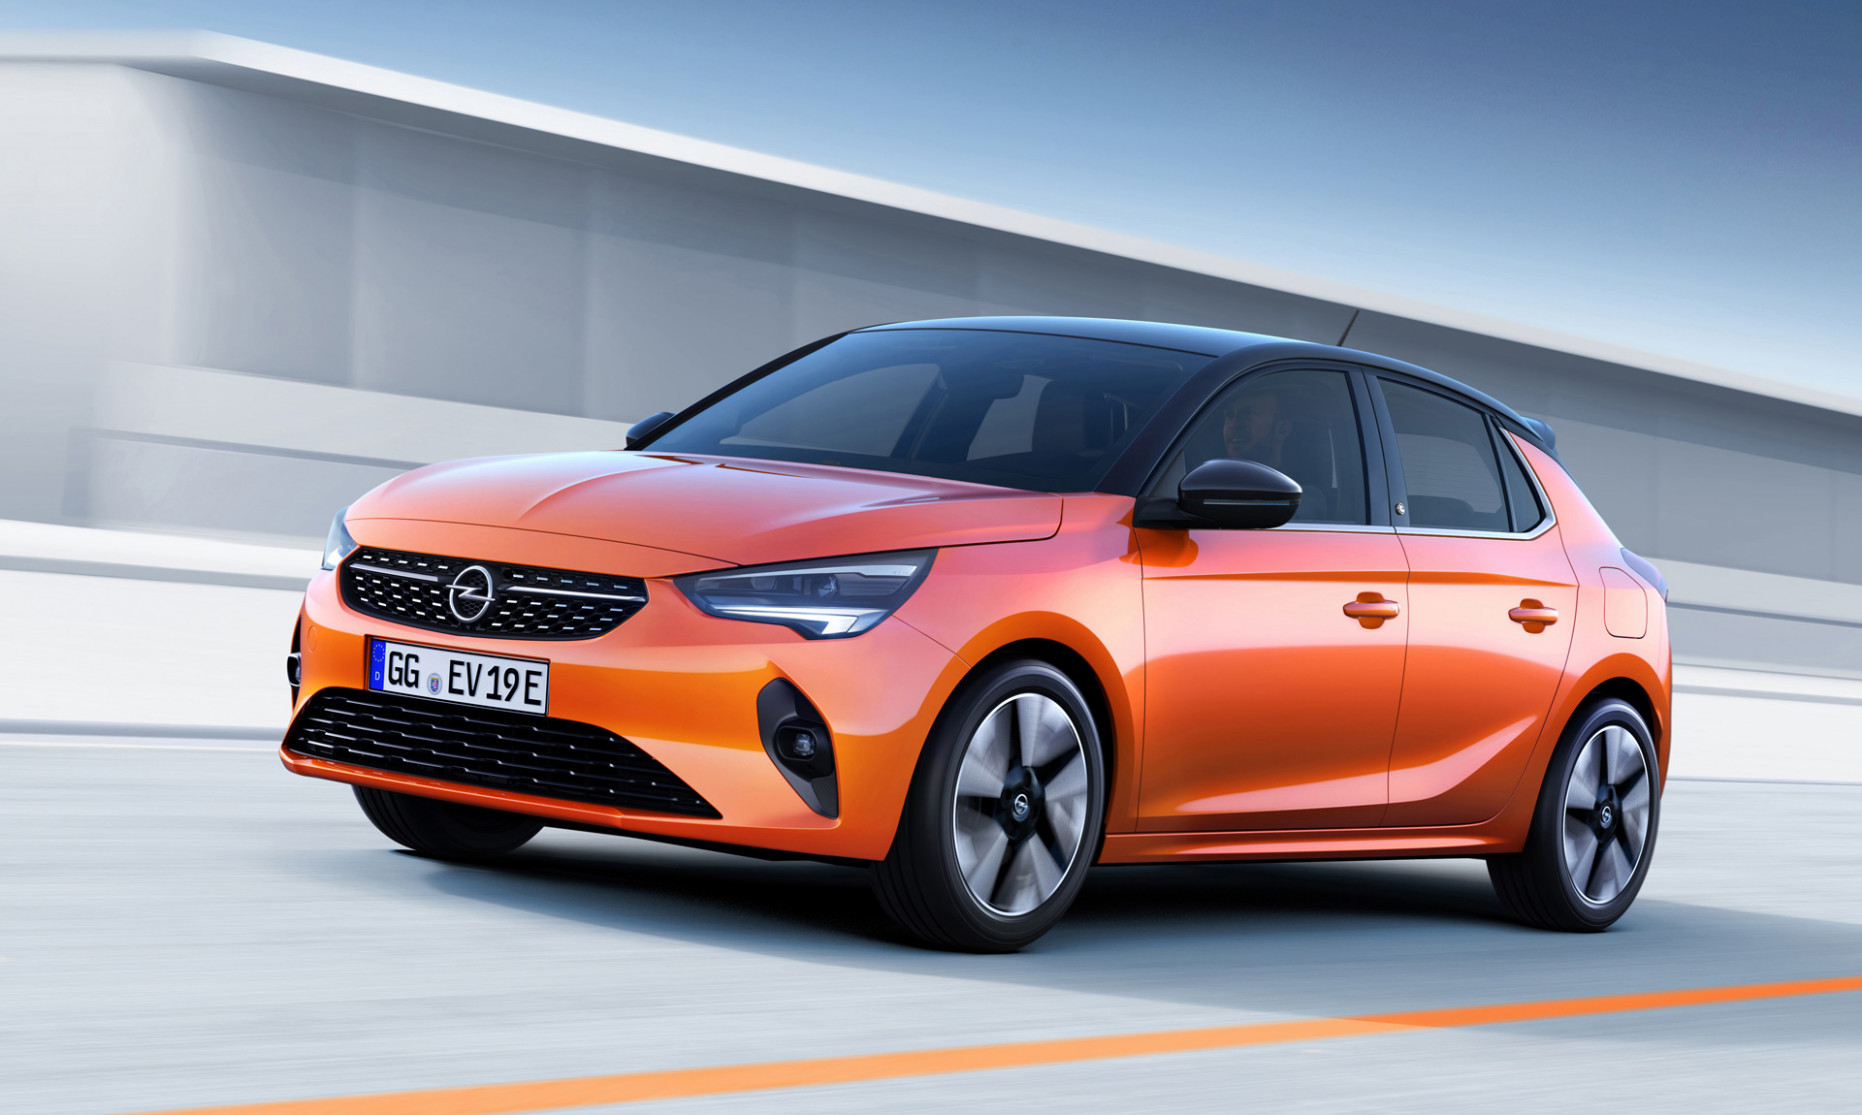 Opel's first car post GM is the 8 Corsa-e electric hatch